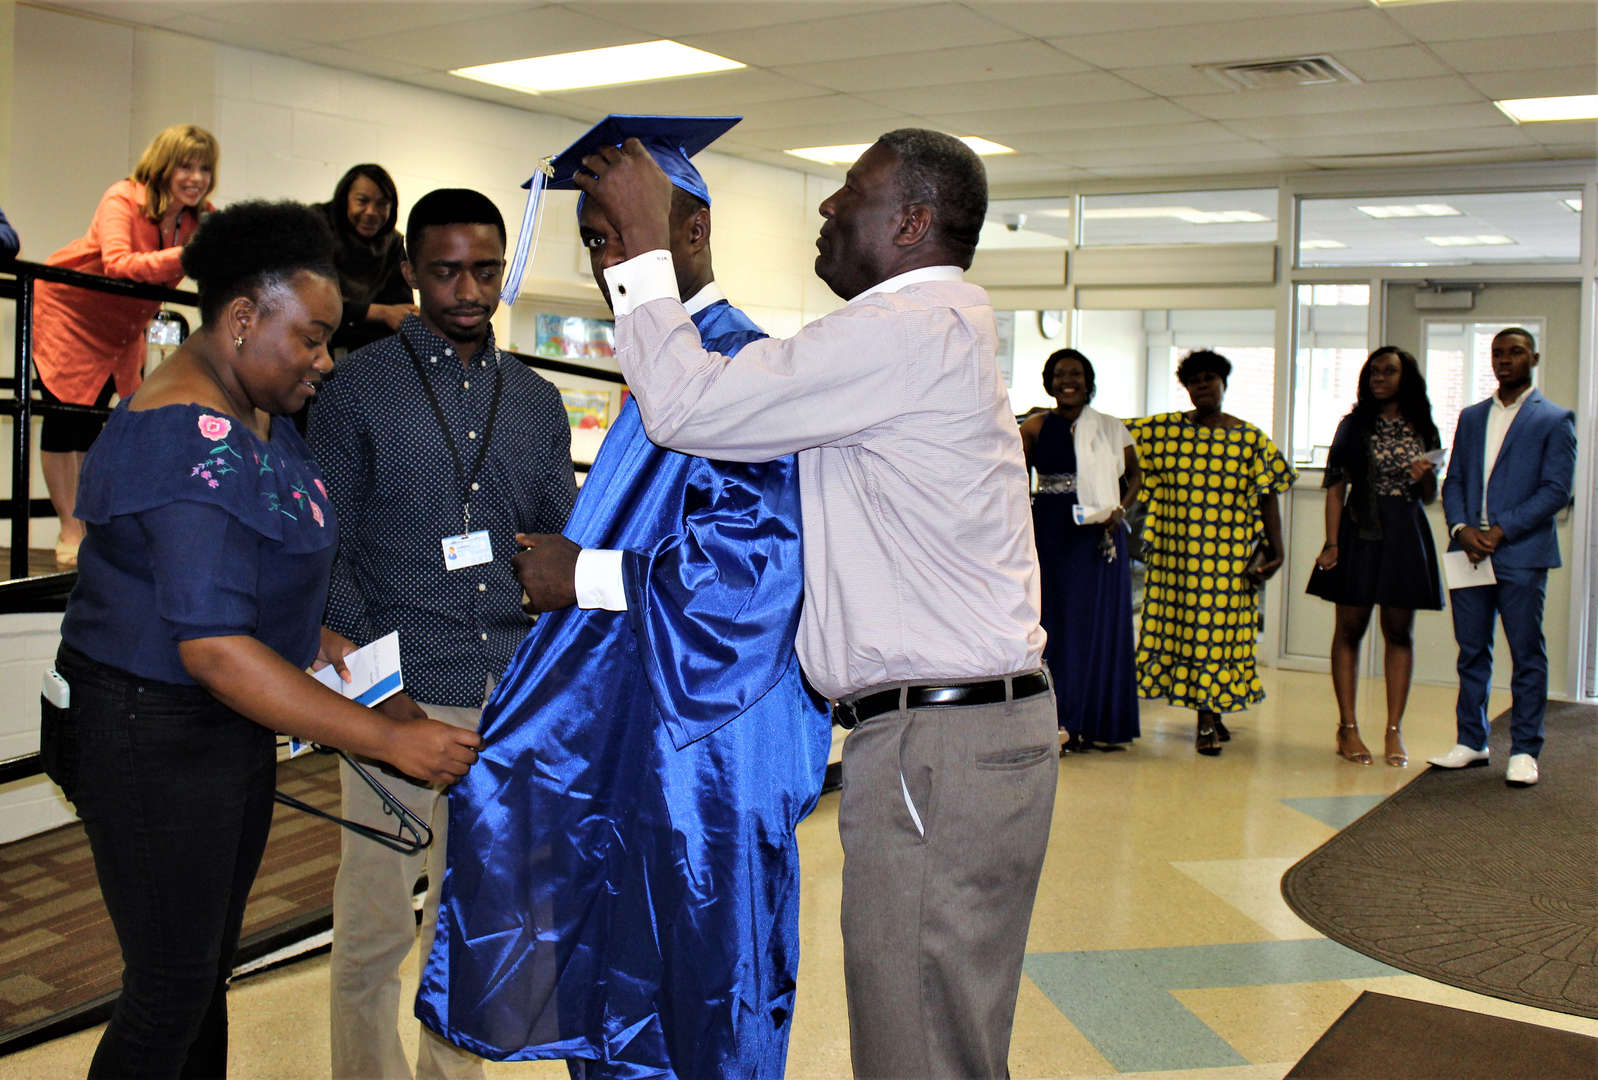 Staff members help a student get into his cap and gown on graduation day.